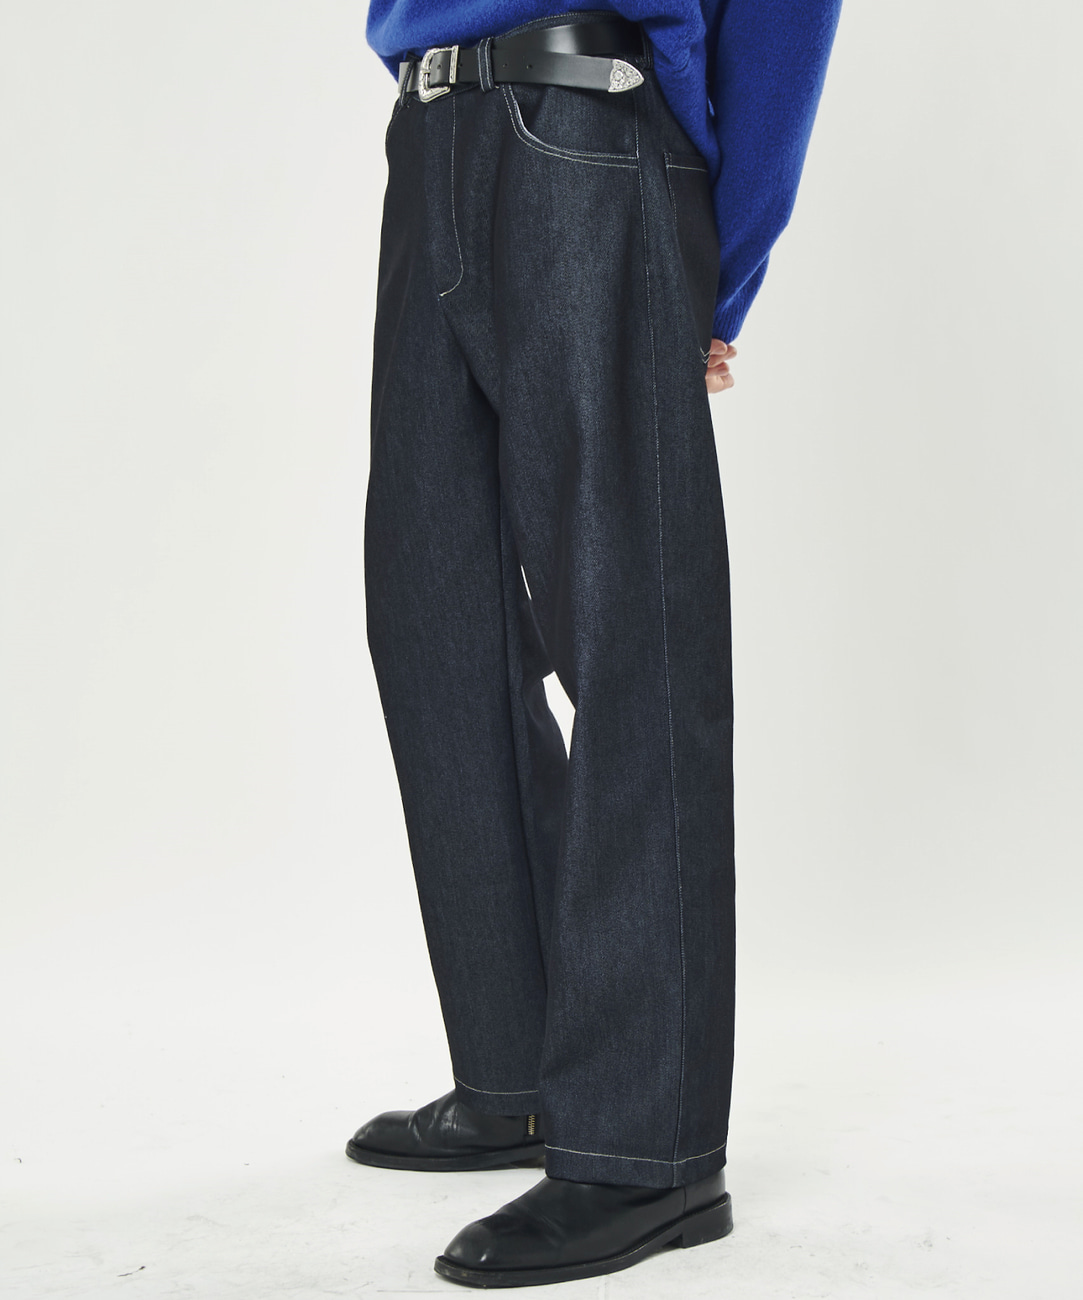 DWS SLEEK SLEEK TROUSERS(NAVY)